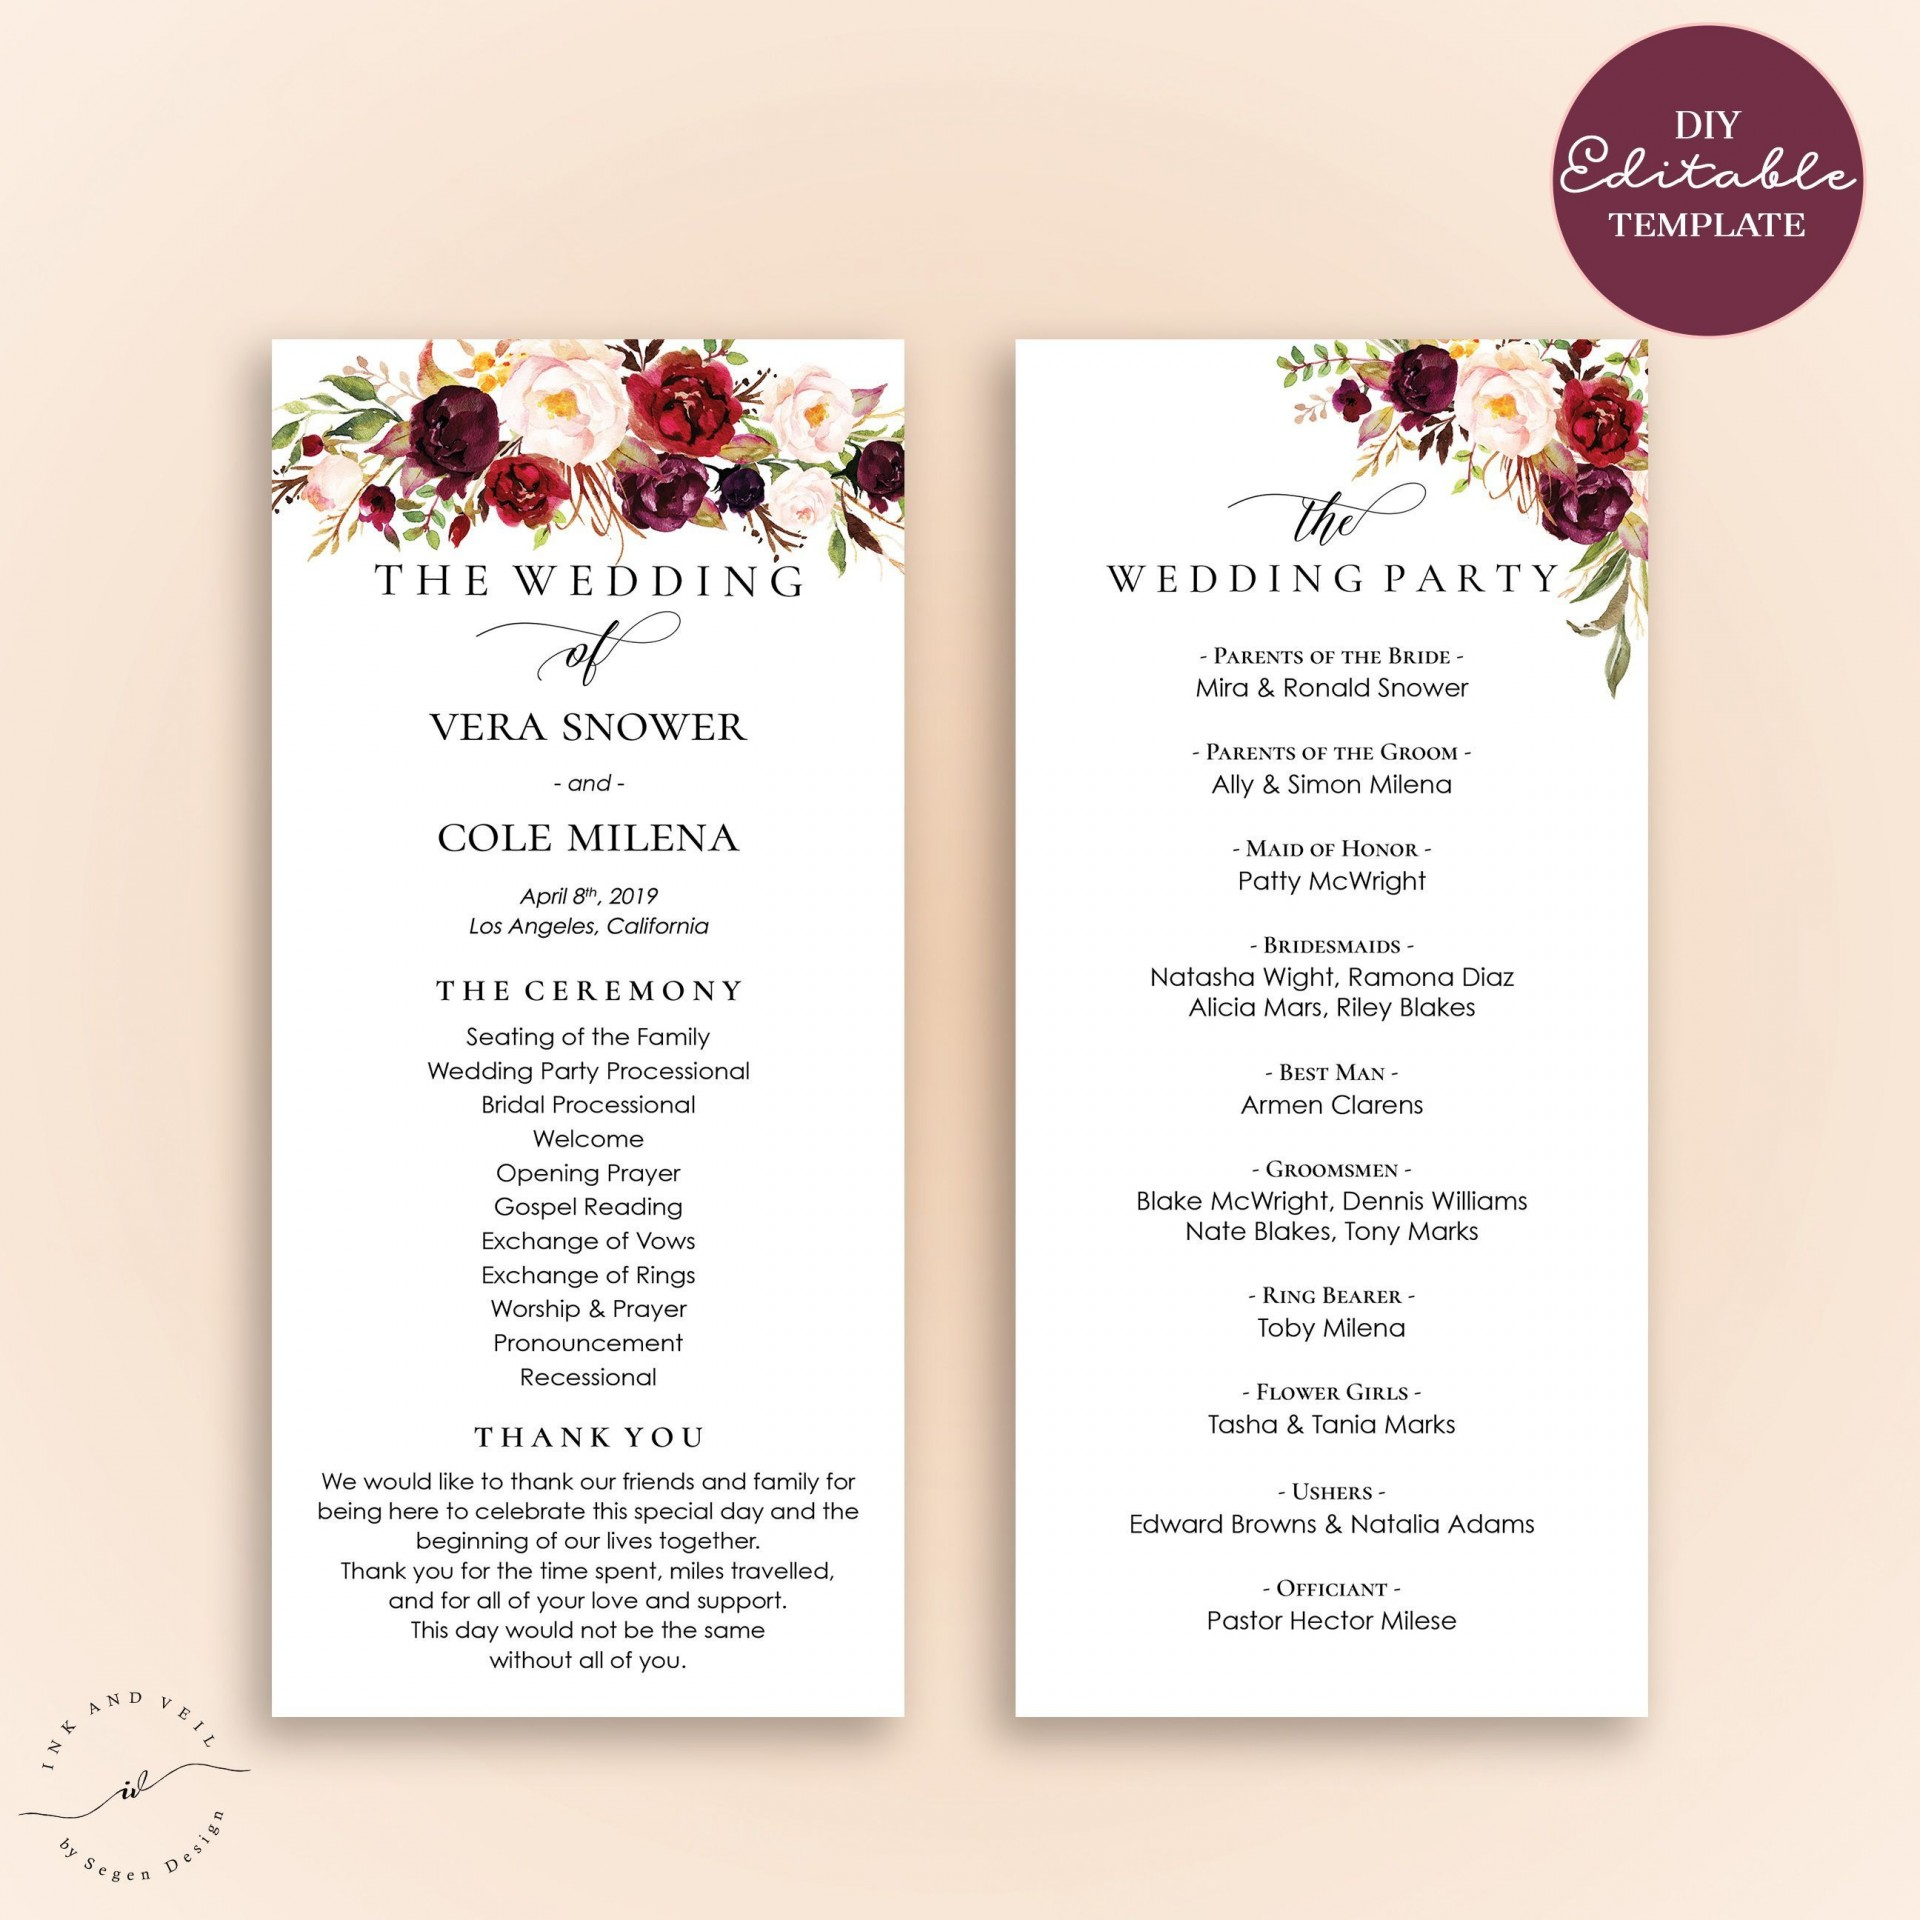 007 Fantastic Wedding Reception Program Template Example  Templates Layout Free Download Ceremony And1920